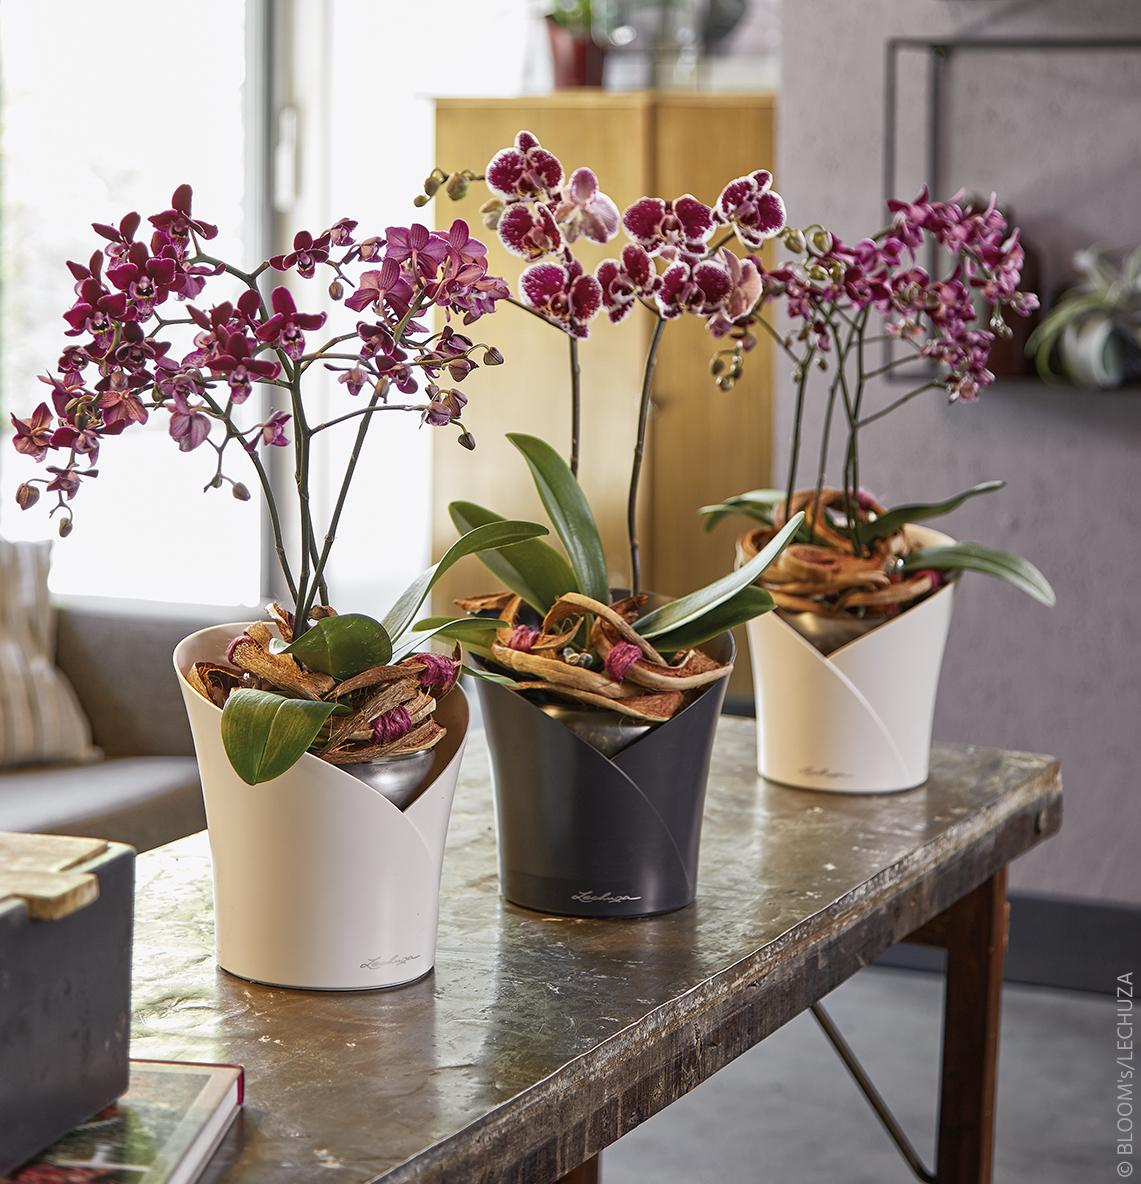 'ORCHIDEA is the planter from LECHUZA that's perfect for meeting the high demands of Phalaenopsis